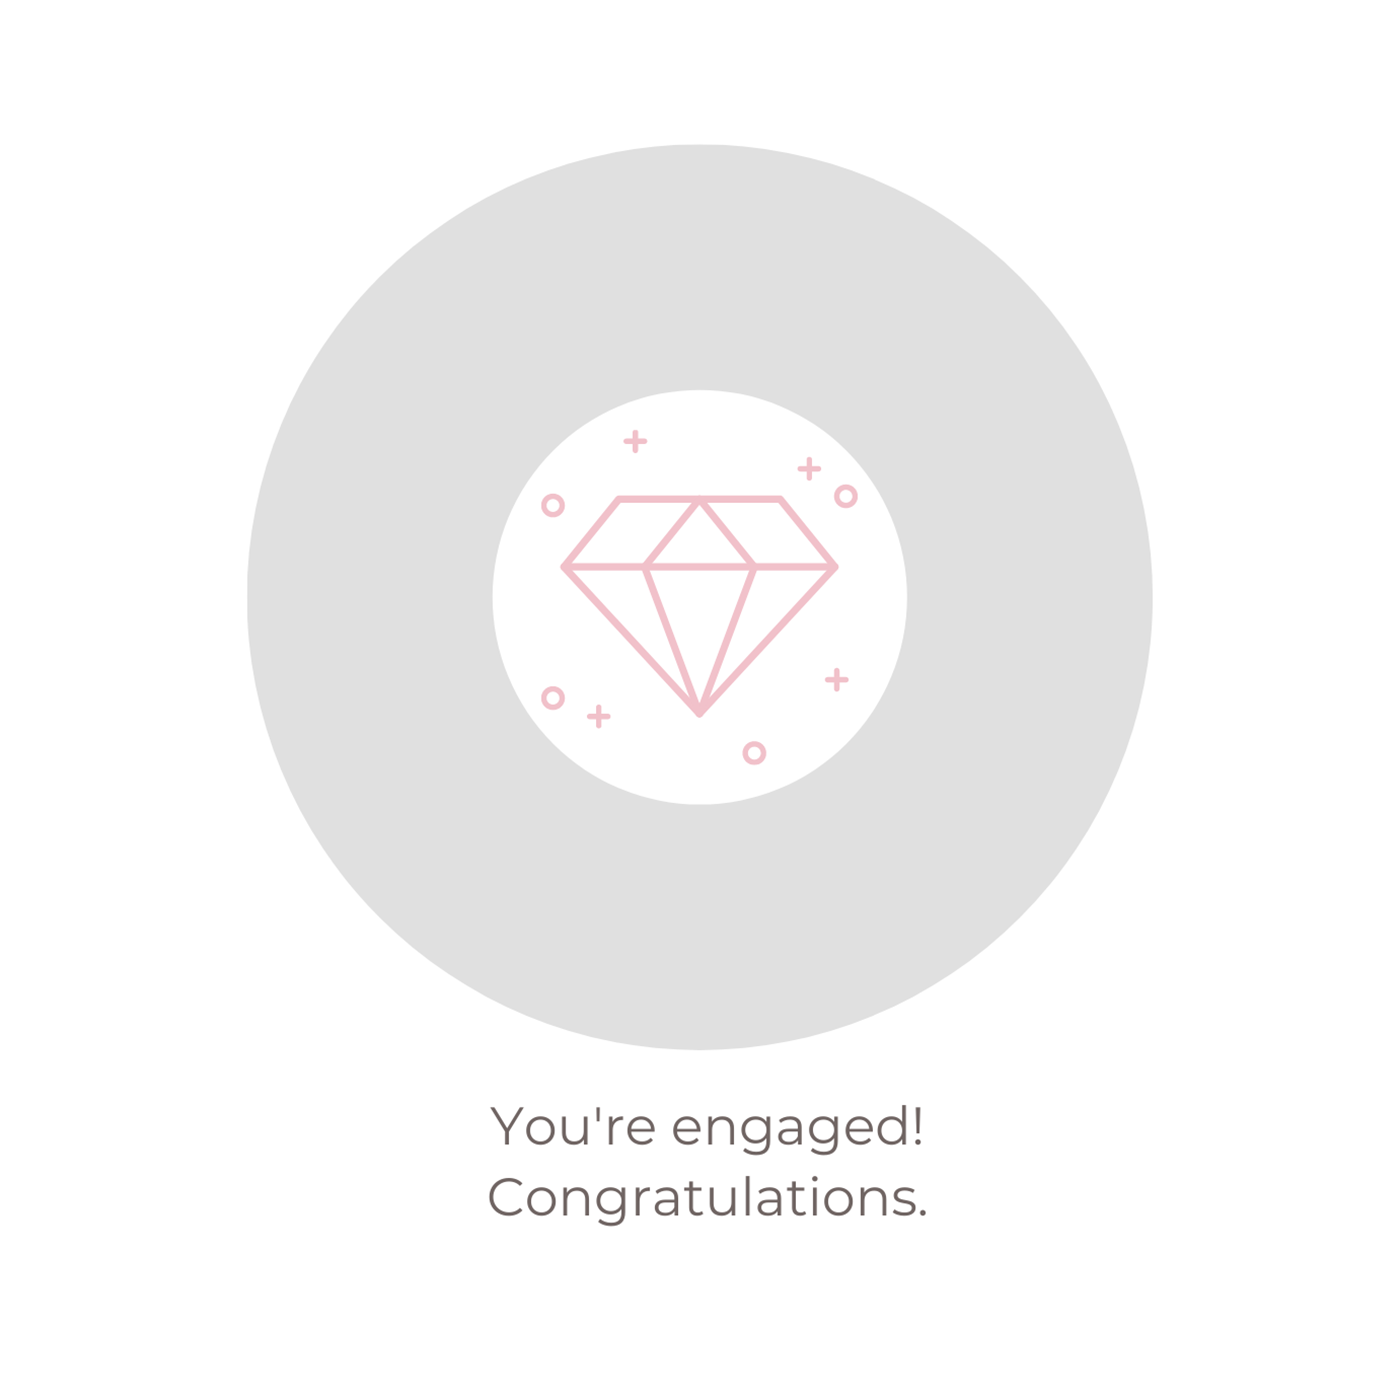 You're engaged! Congratulations.